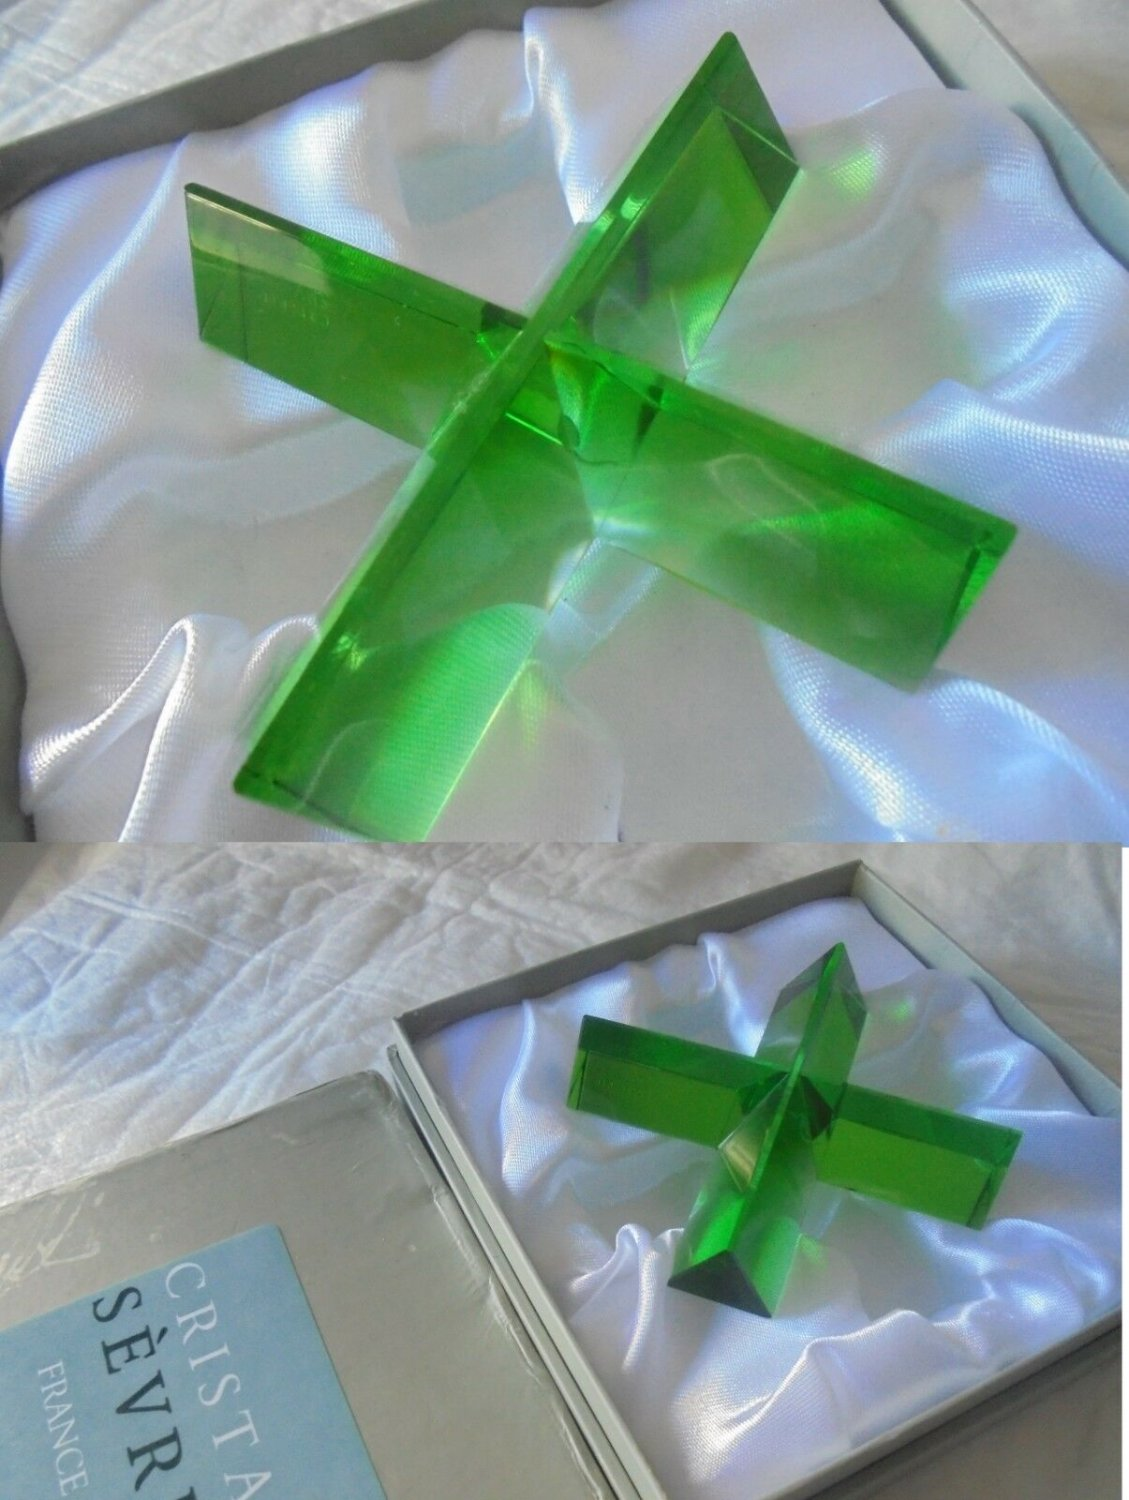 CRISTAL SEVRES paperweight paper weight crystal green color  X shape in gift box Original